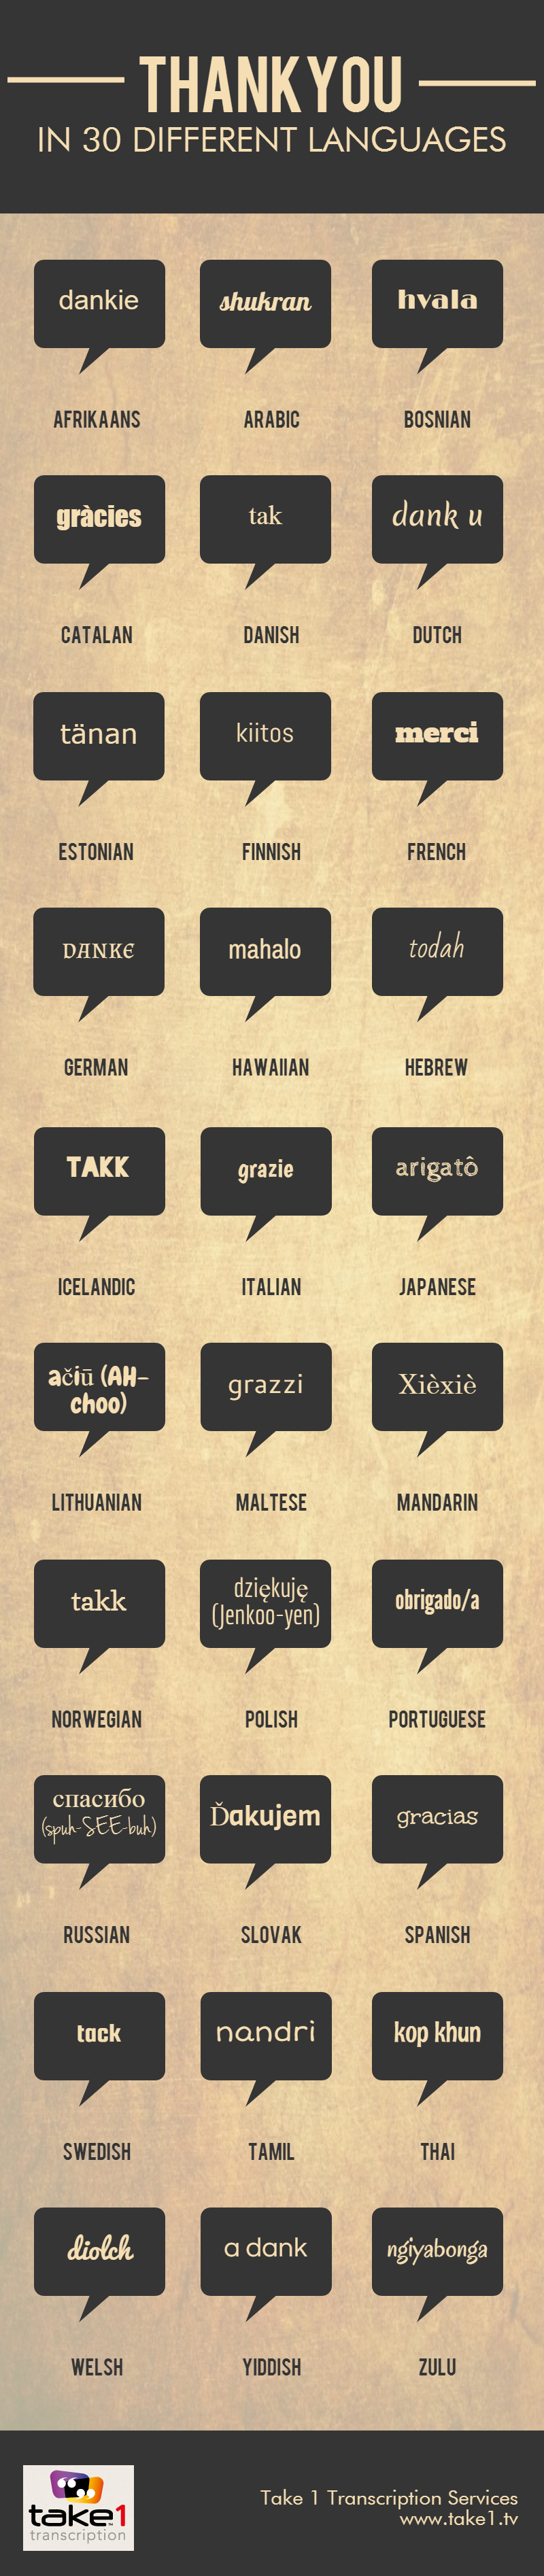 """Thank You in 30 Different Languages  This shows how some things might not look the same or even sound similar across different languages but are still expressed. """"Thank you"""" is a universal concept, it is important to people to be able to express gratitude.  So, languages (cultures) have evolved to include words with the agreed upon meaning to express the concept."""